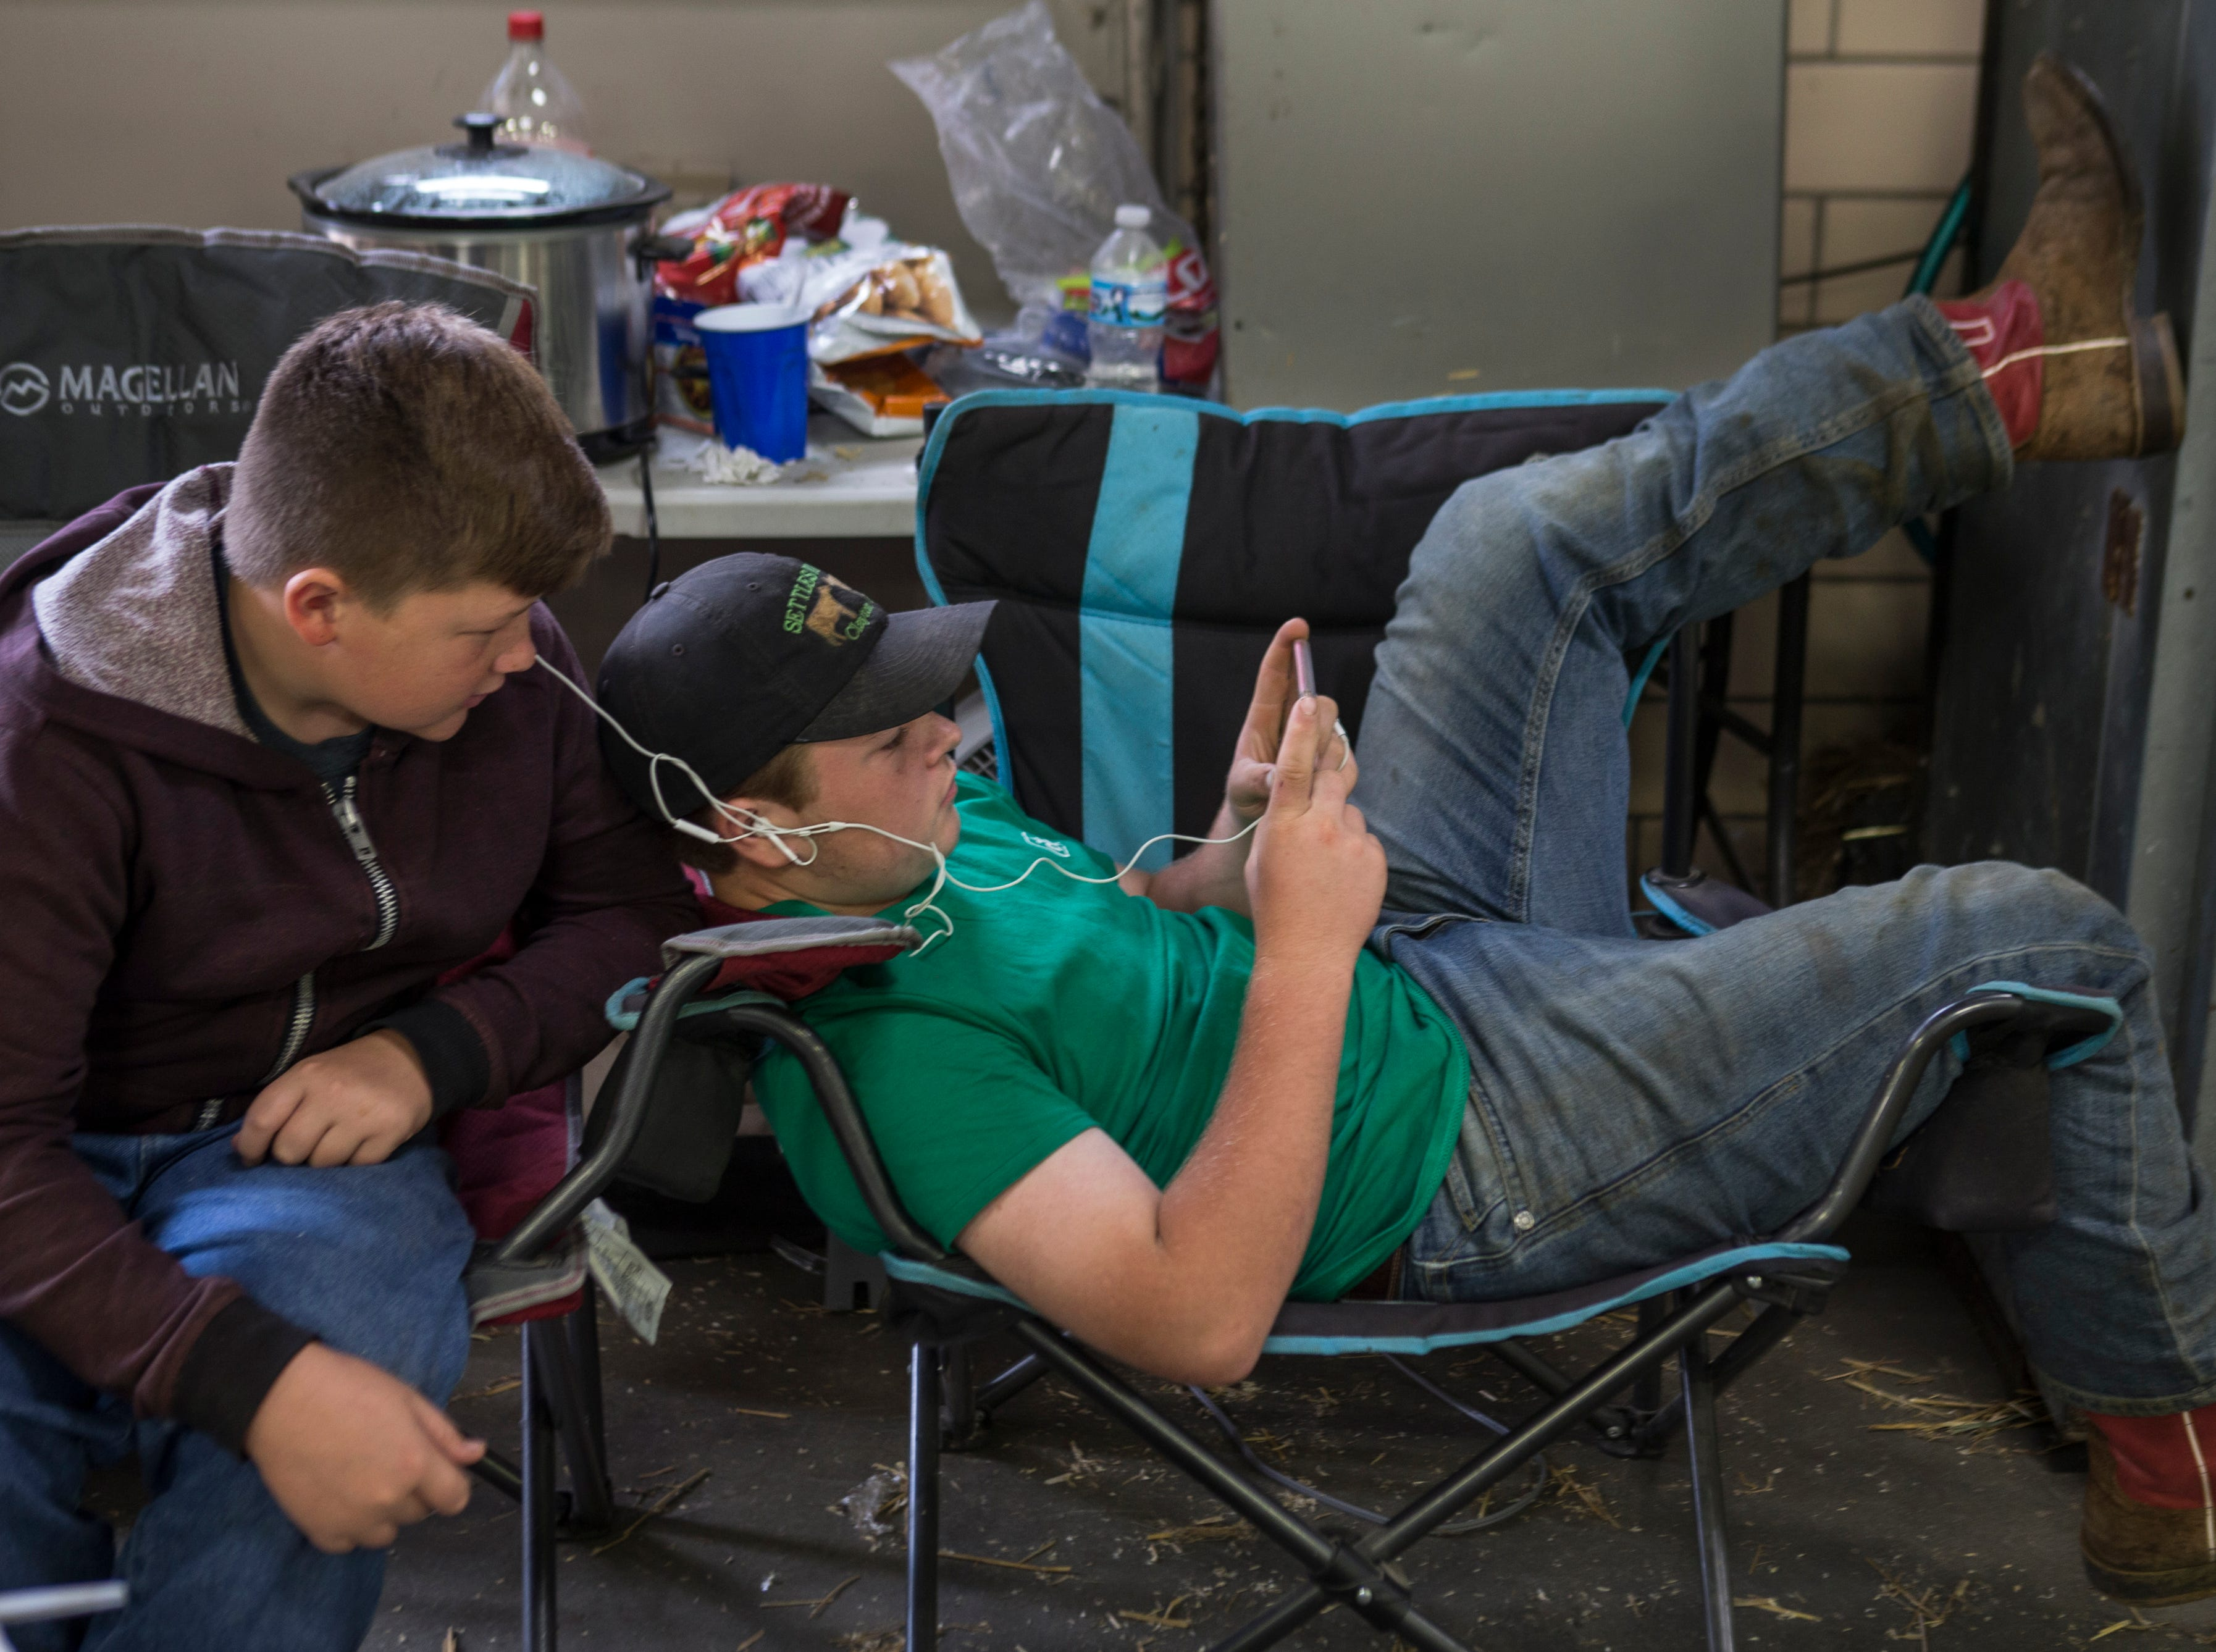 Carter Settles, 13, right, played a video game on his phone while Dillon Freeman, 14, looked on. The boys were showing their dairy cattle at the Kentucky State Fair. Aug. 17, 2018.